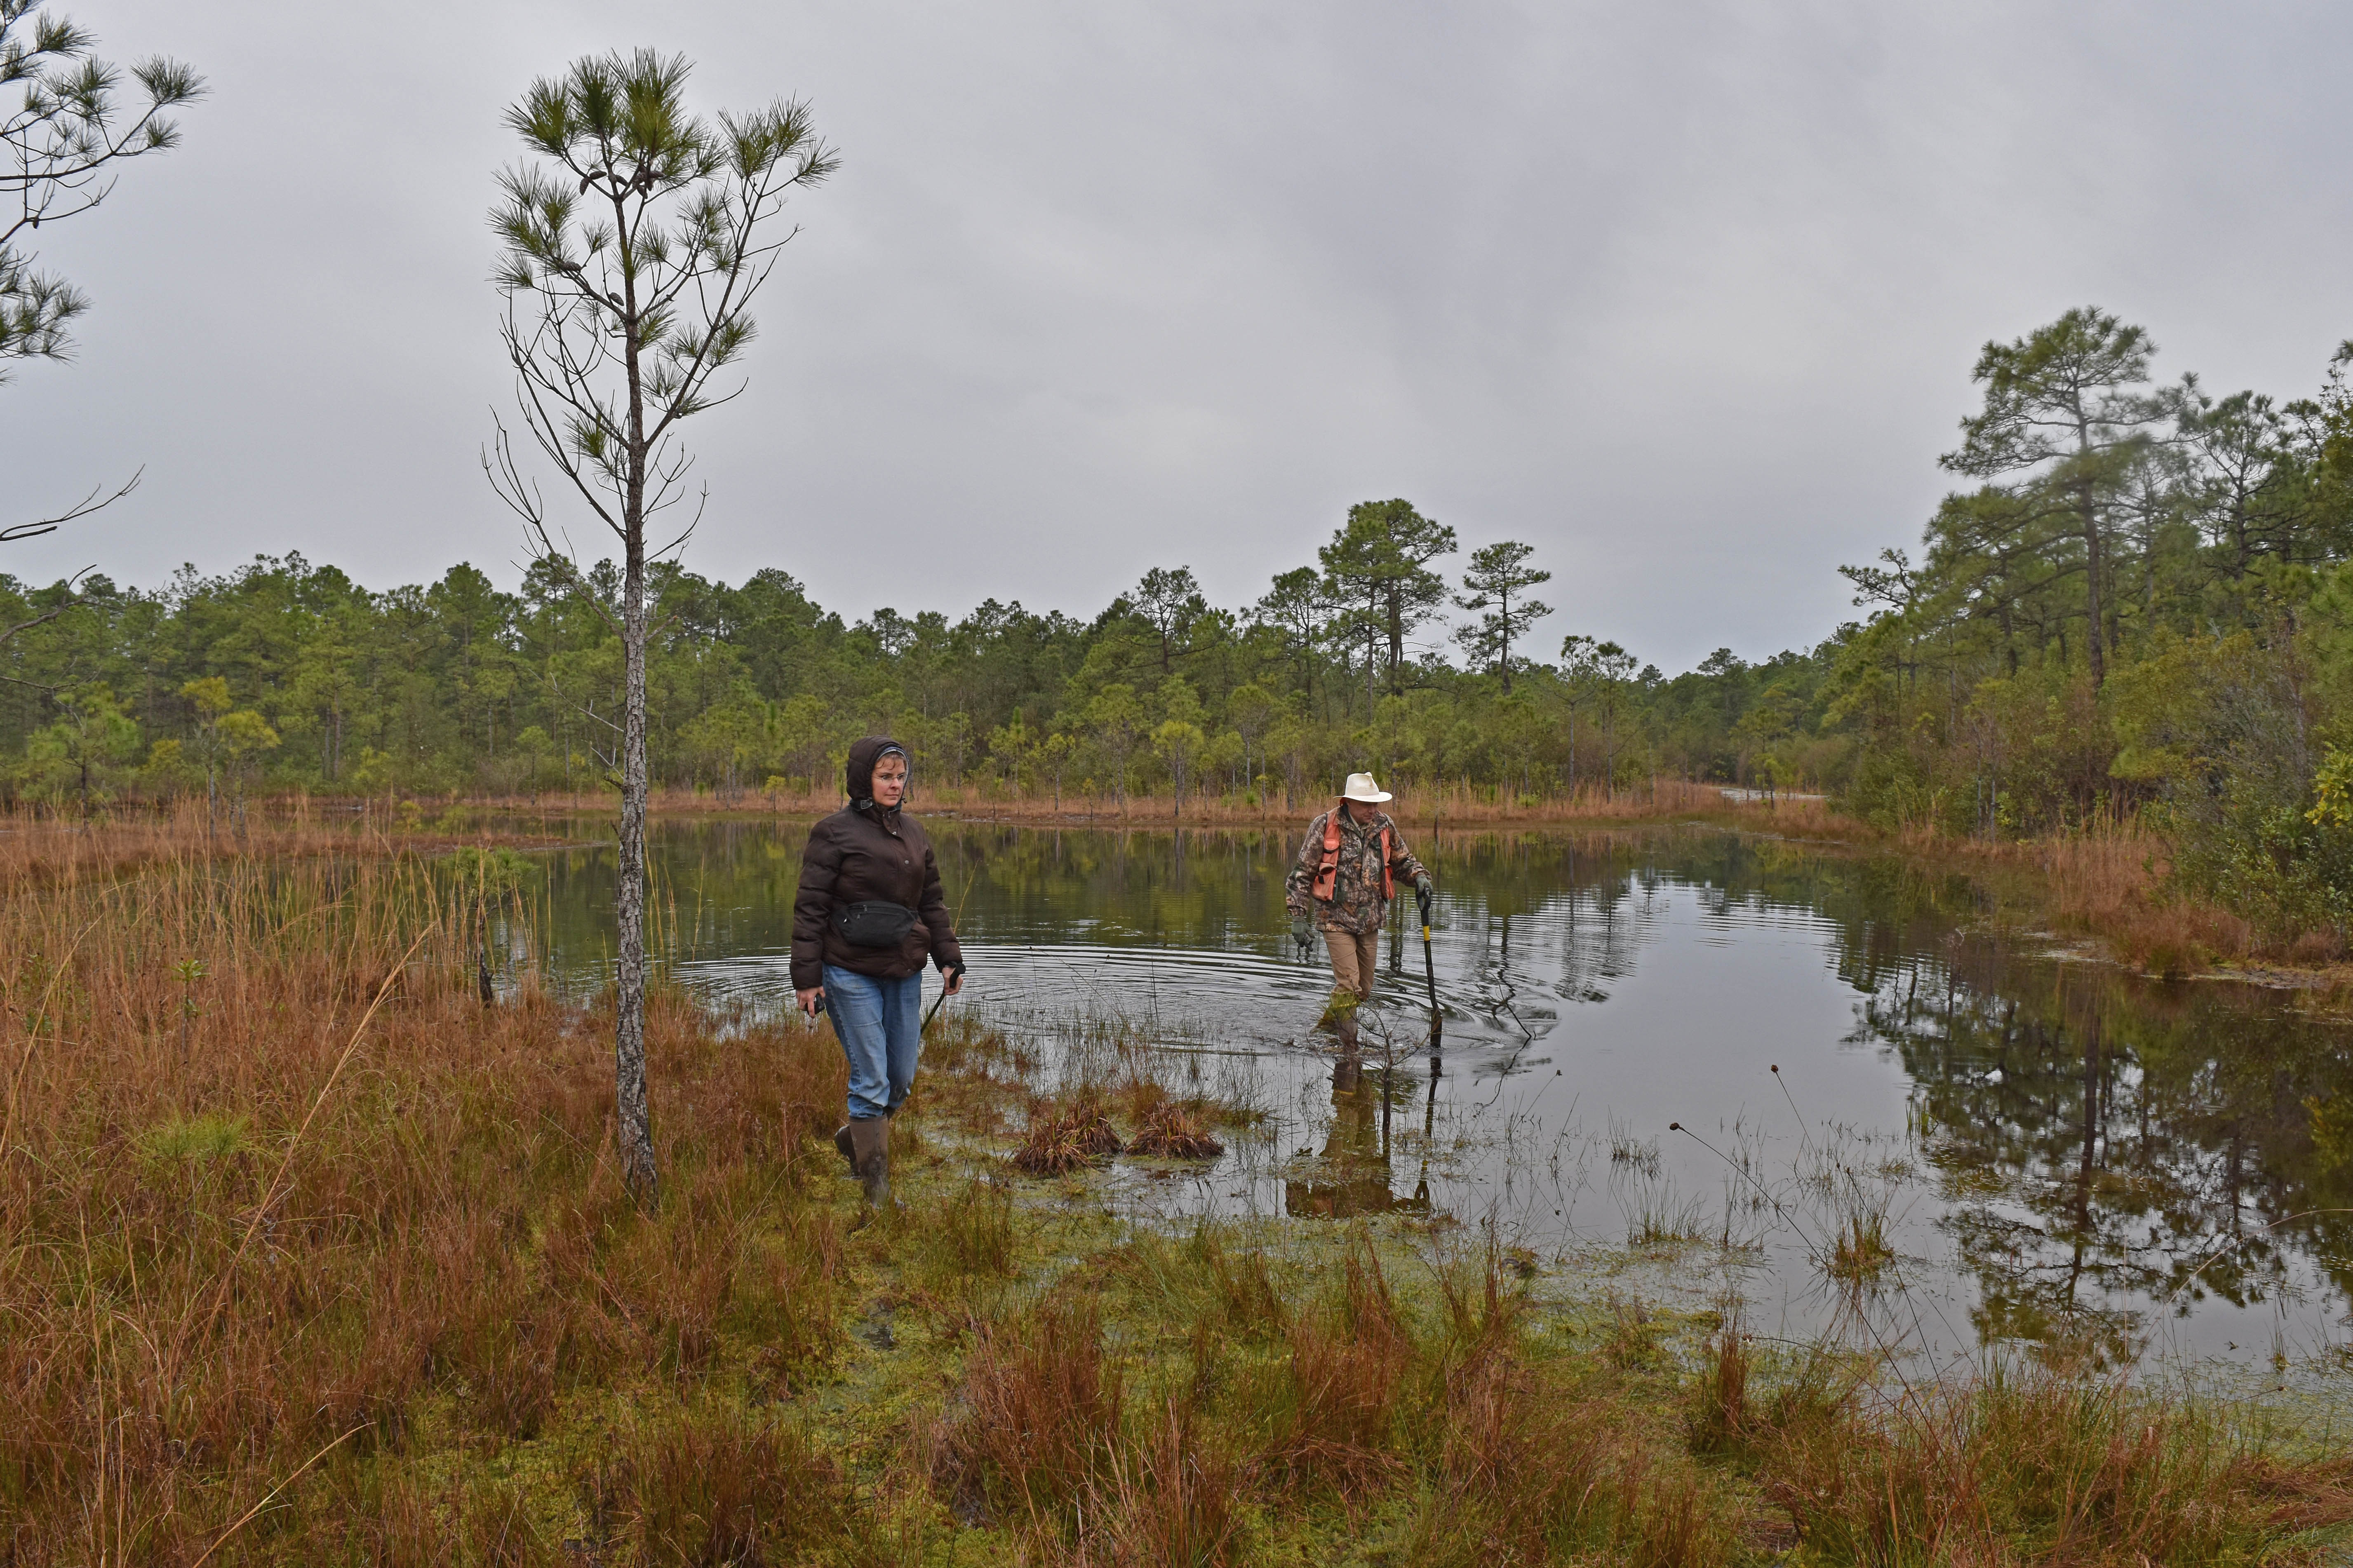 People scientists Boiling Spring Lakes NP ncwetlands AM (9), Forest, Grass, Lake, NC Wetlands, HQ Photo